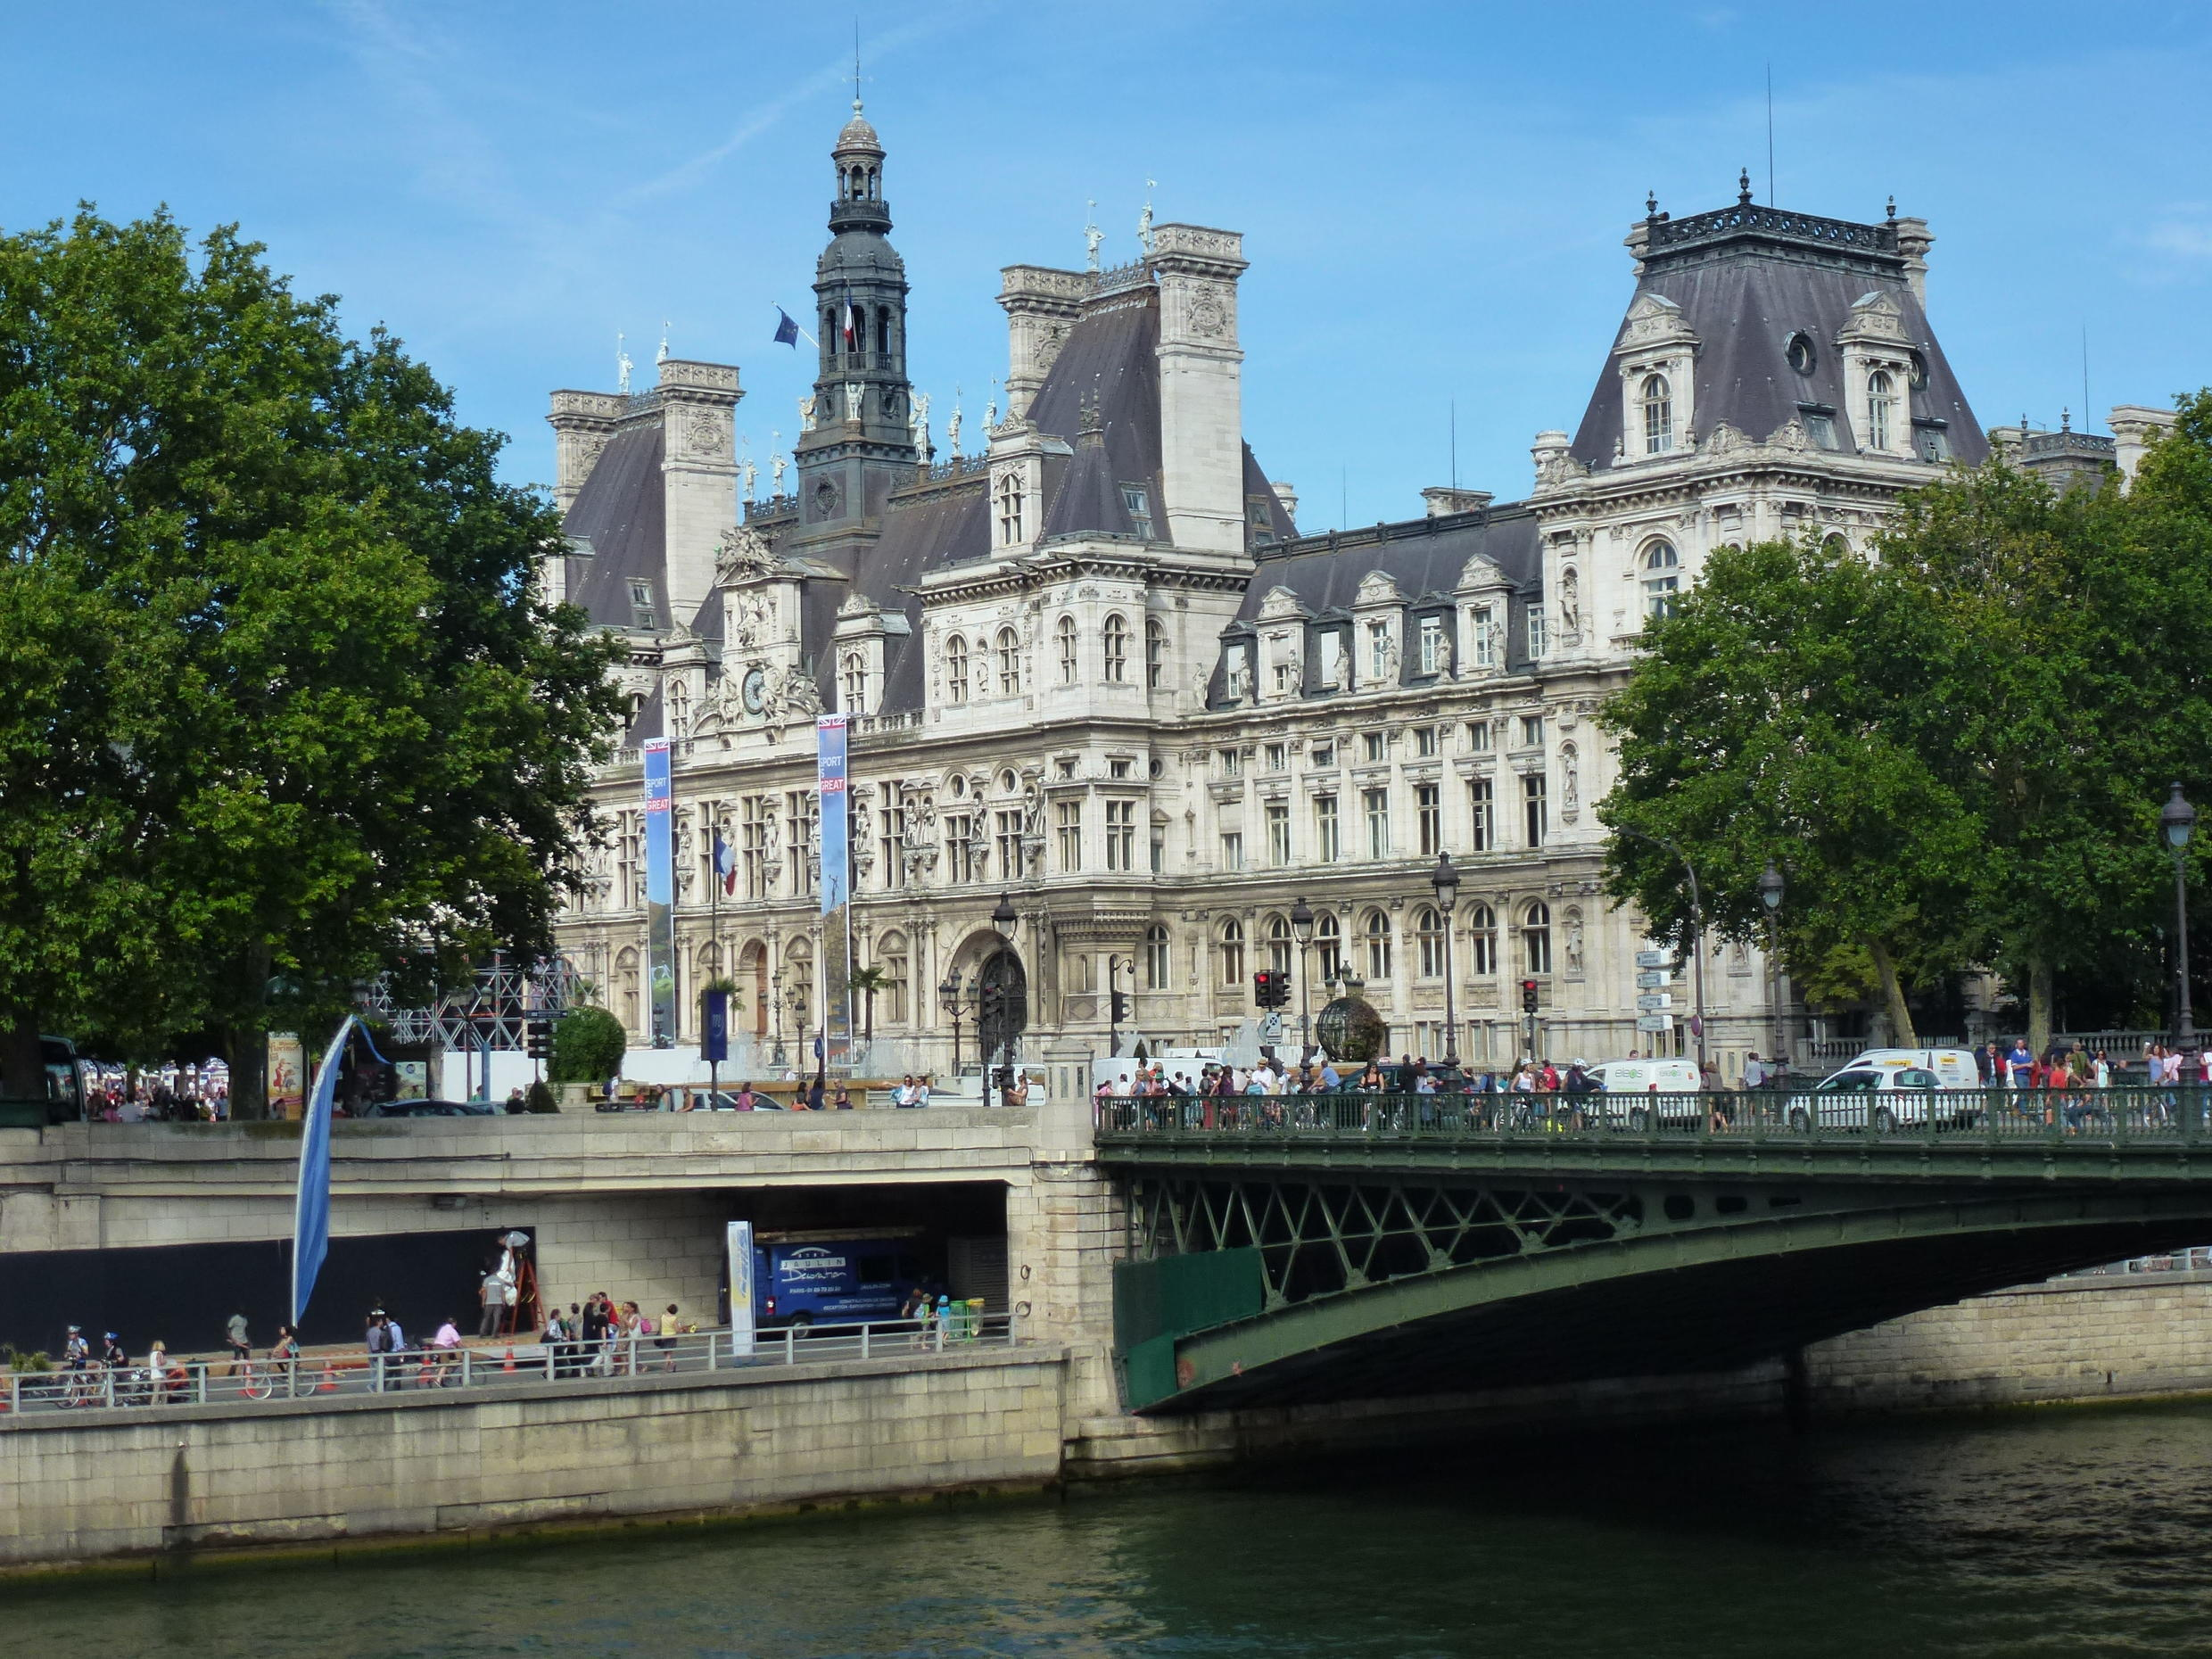 Paris is a mineral city, which makes it difficult to adapt to heatwaves due to climate change, says Sebastien Maire, who arrived in 2013 as the city's Chief Resilience Officer